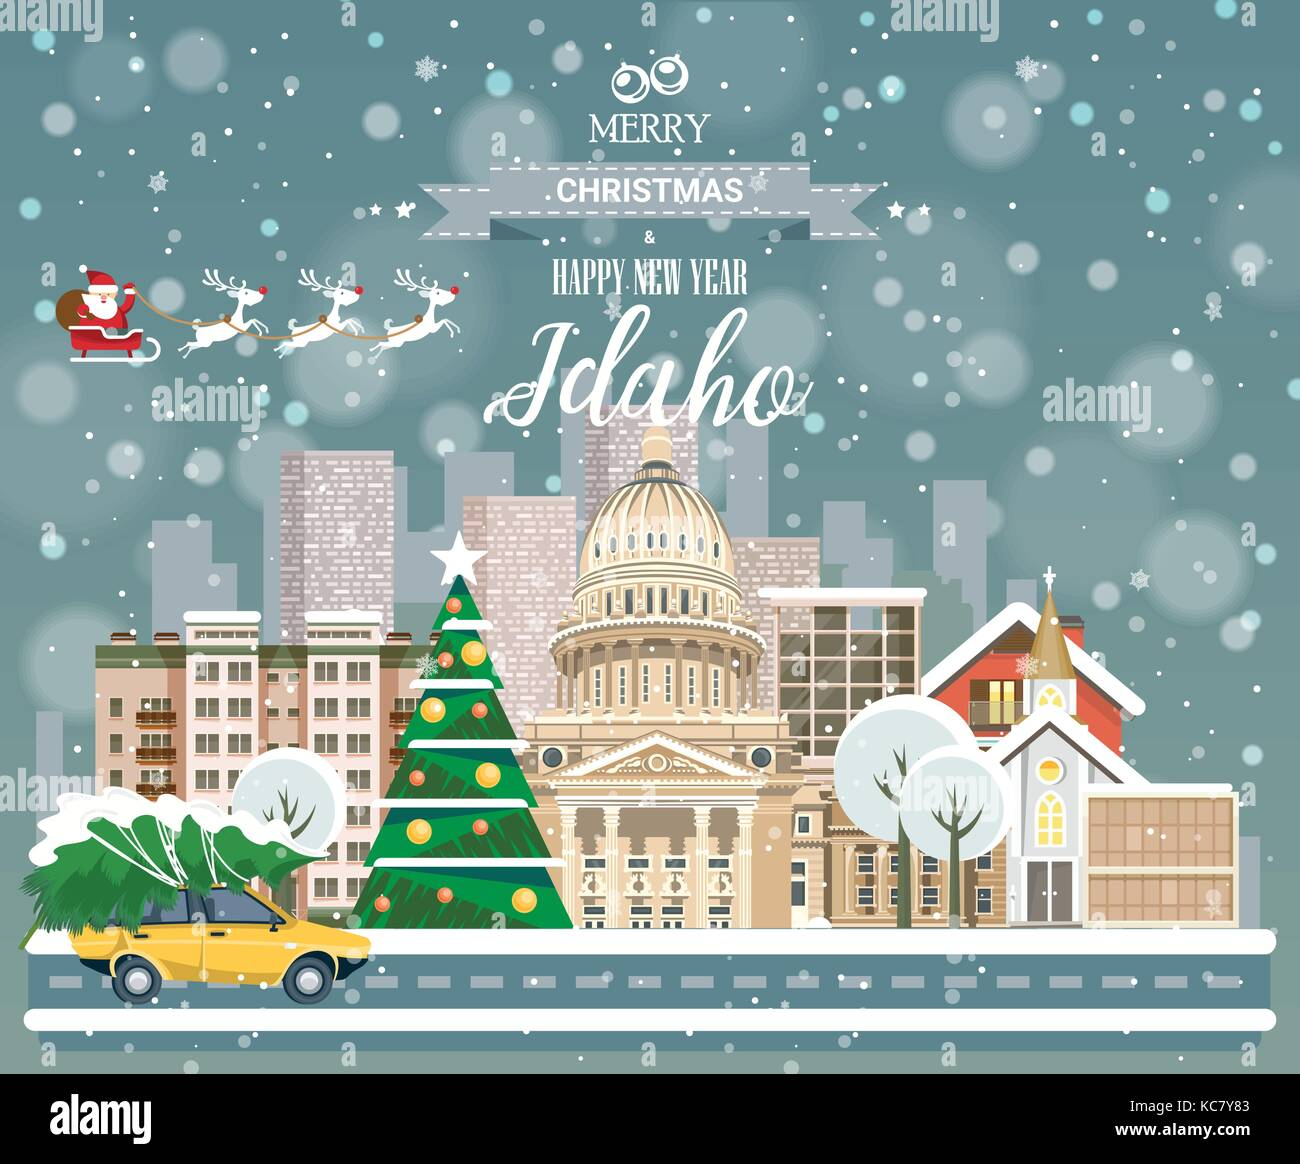 Christmas greeting card. Poster in flat style. Merry Christmas and Happy New Year, Idaho - Stock Vector